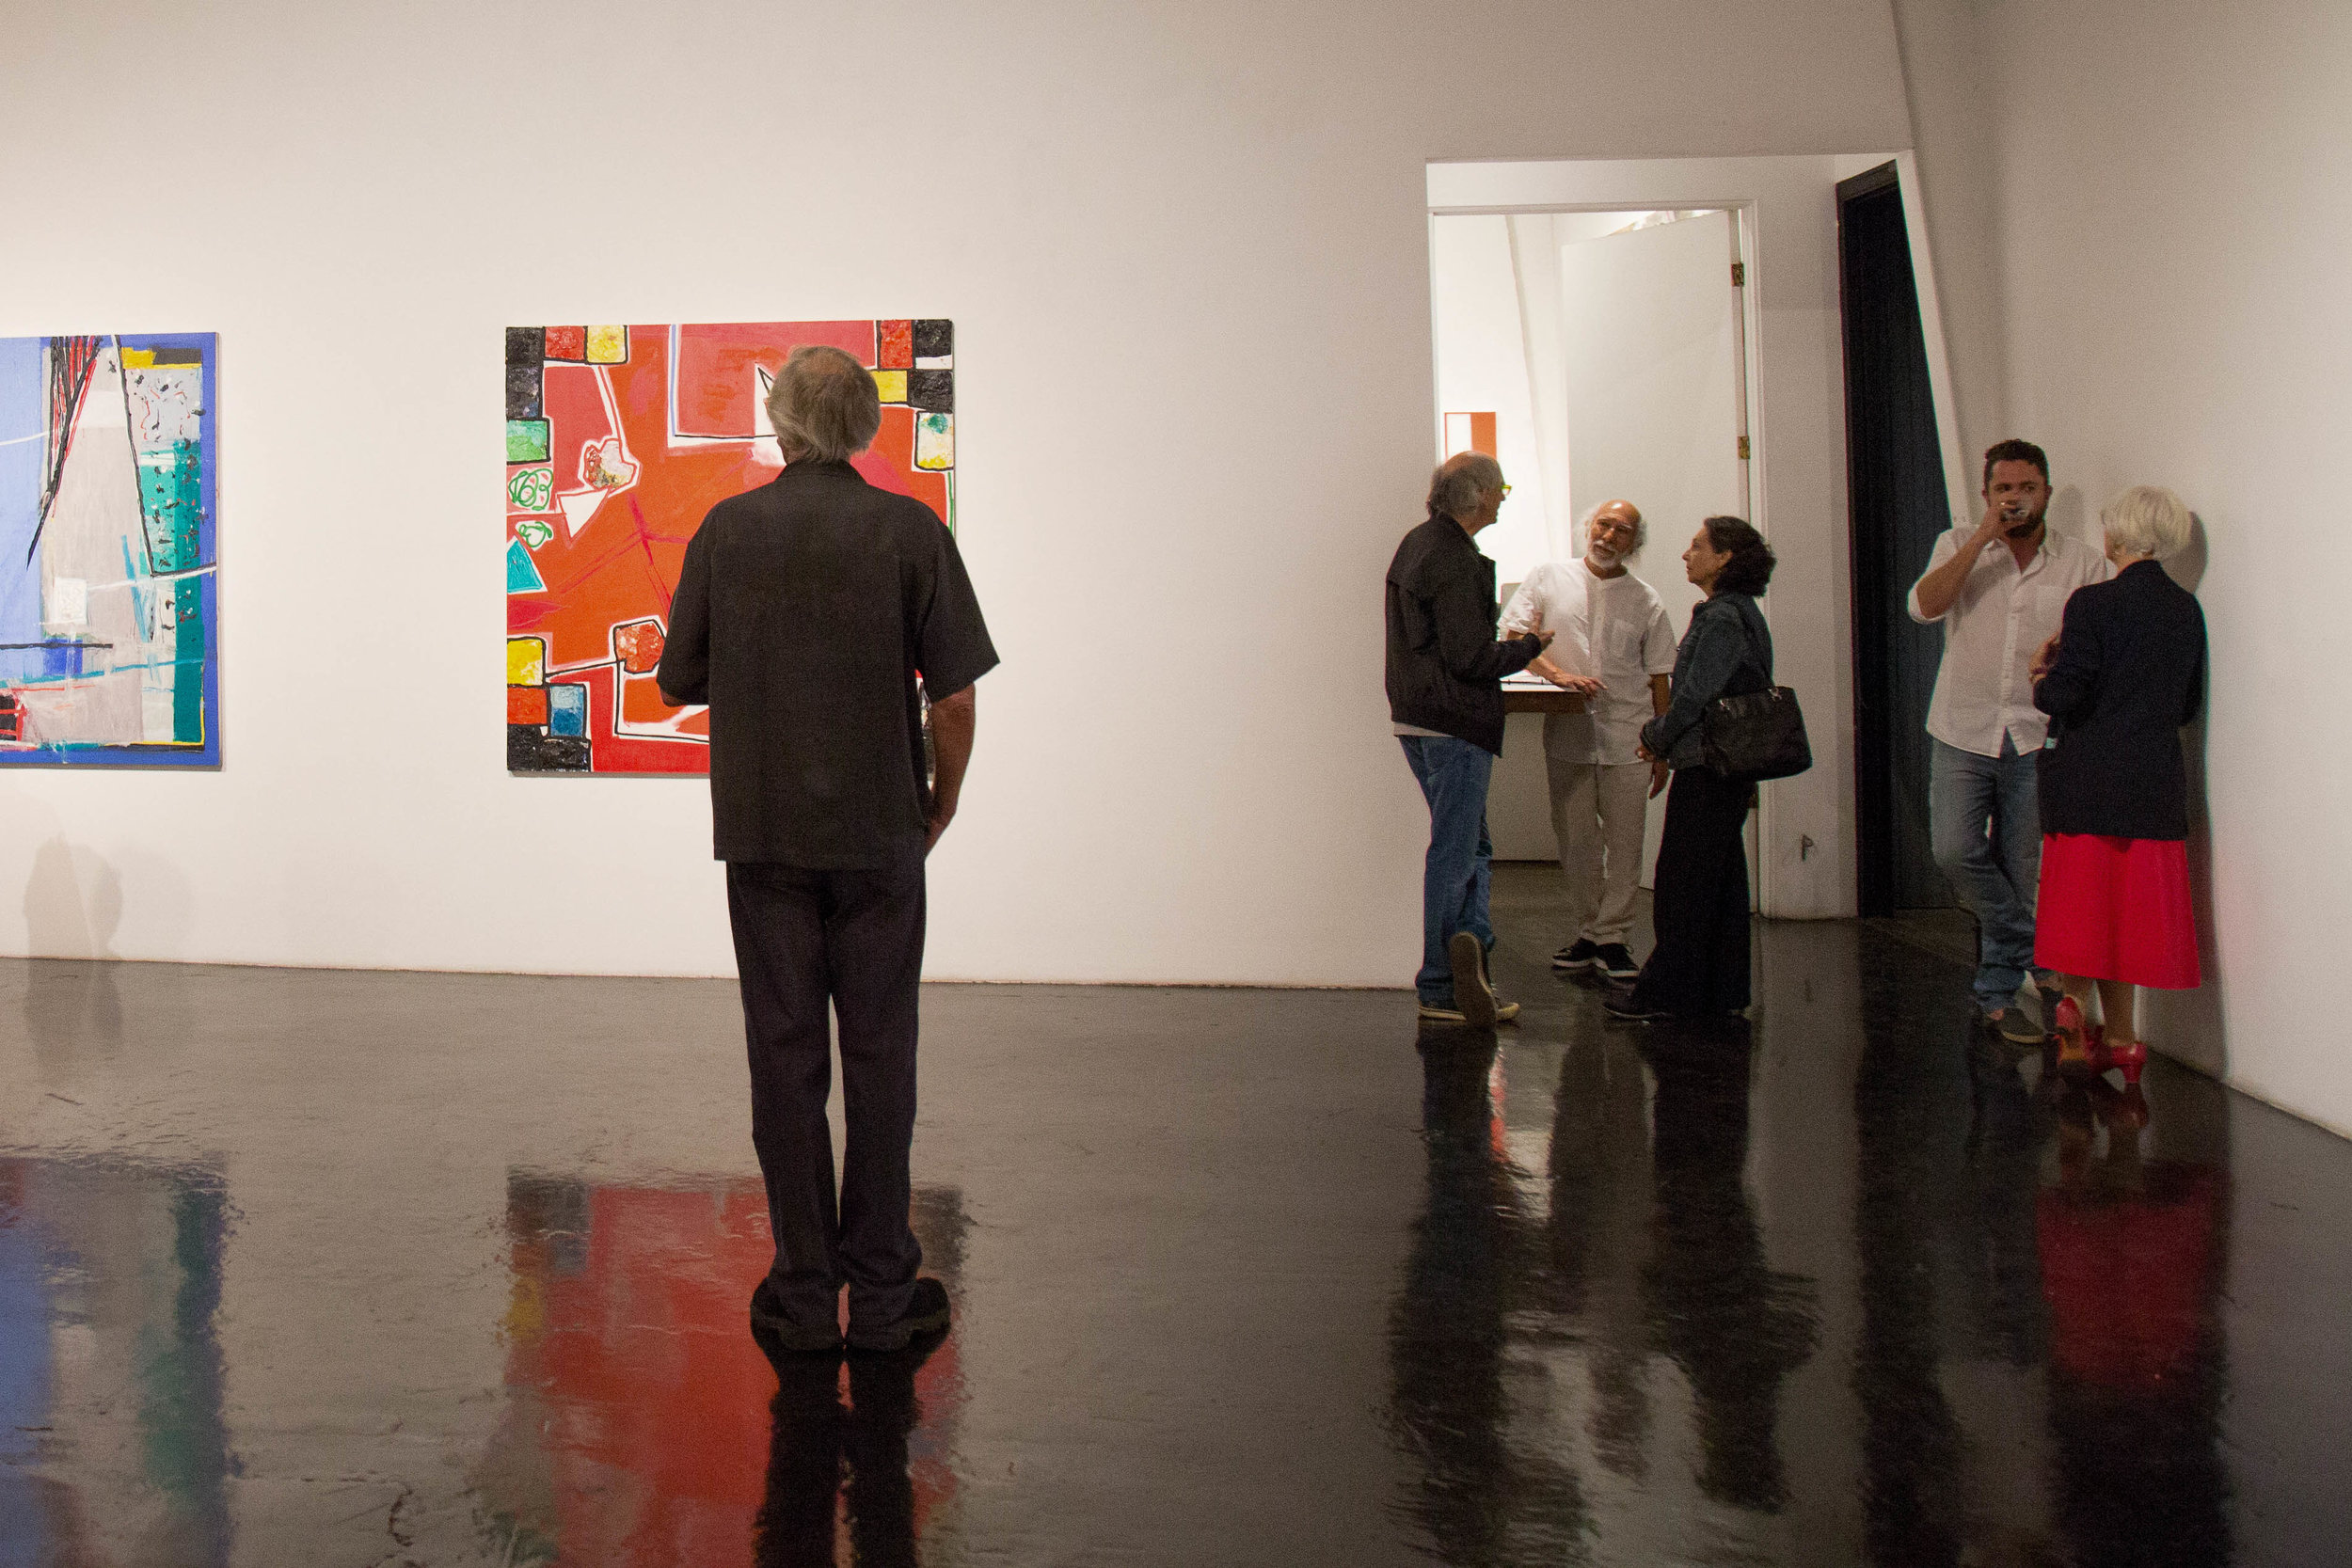 William Turner Gallery held opening reception for an exhibition of recent paintings by San Francisco based artist, Gustavo Ramos Rivera on September 16th, 2017 at Gergamot Station Arts Center. (Yuki Iwamura)